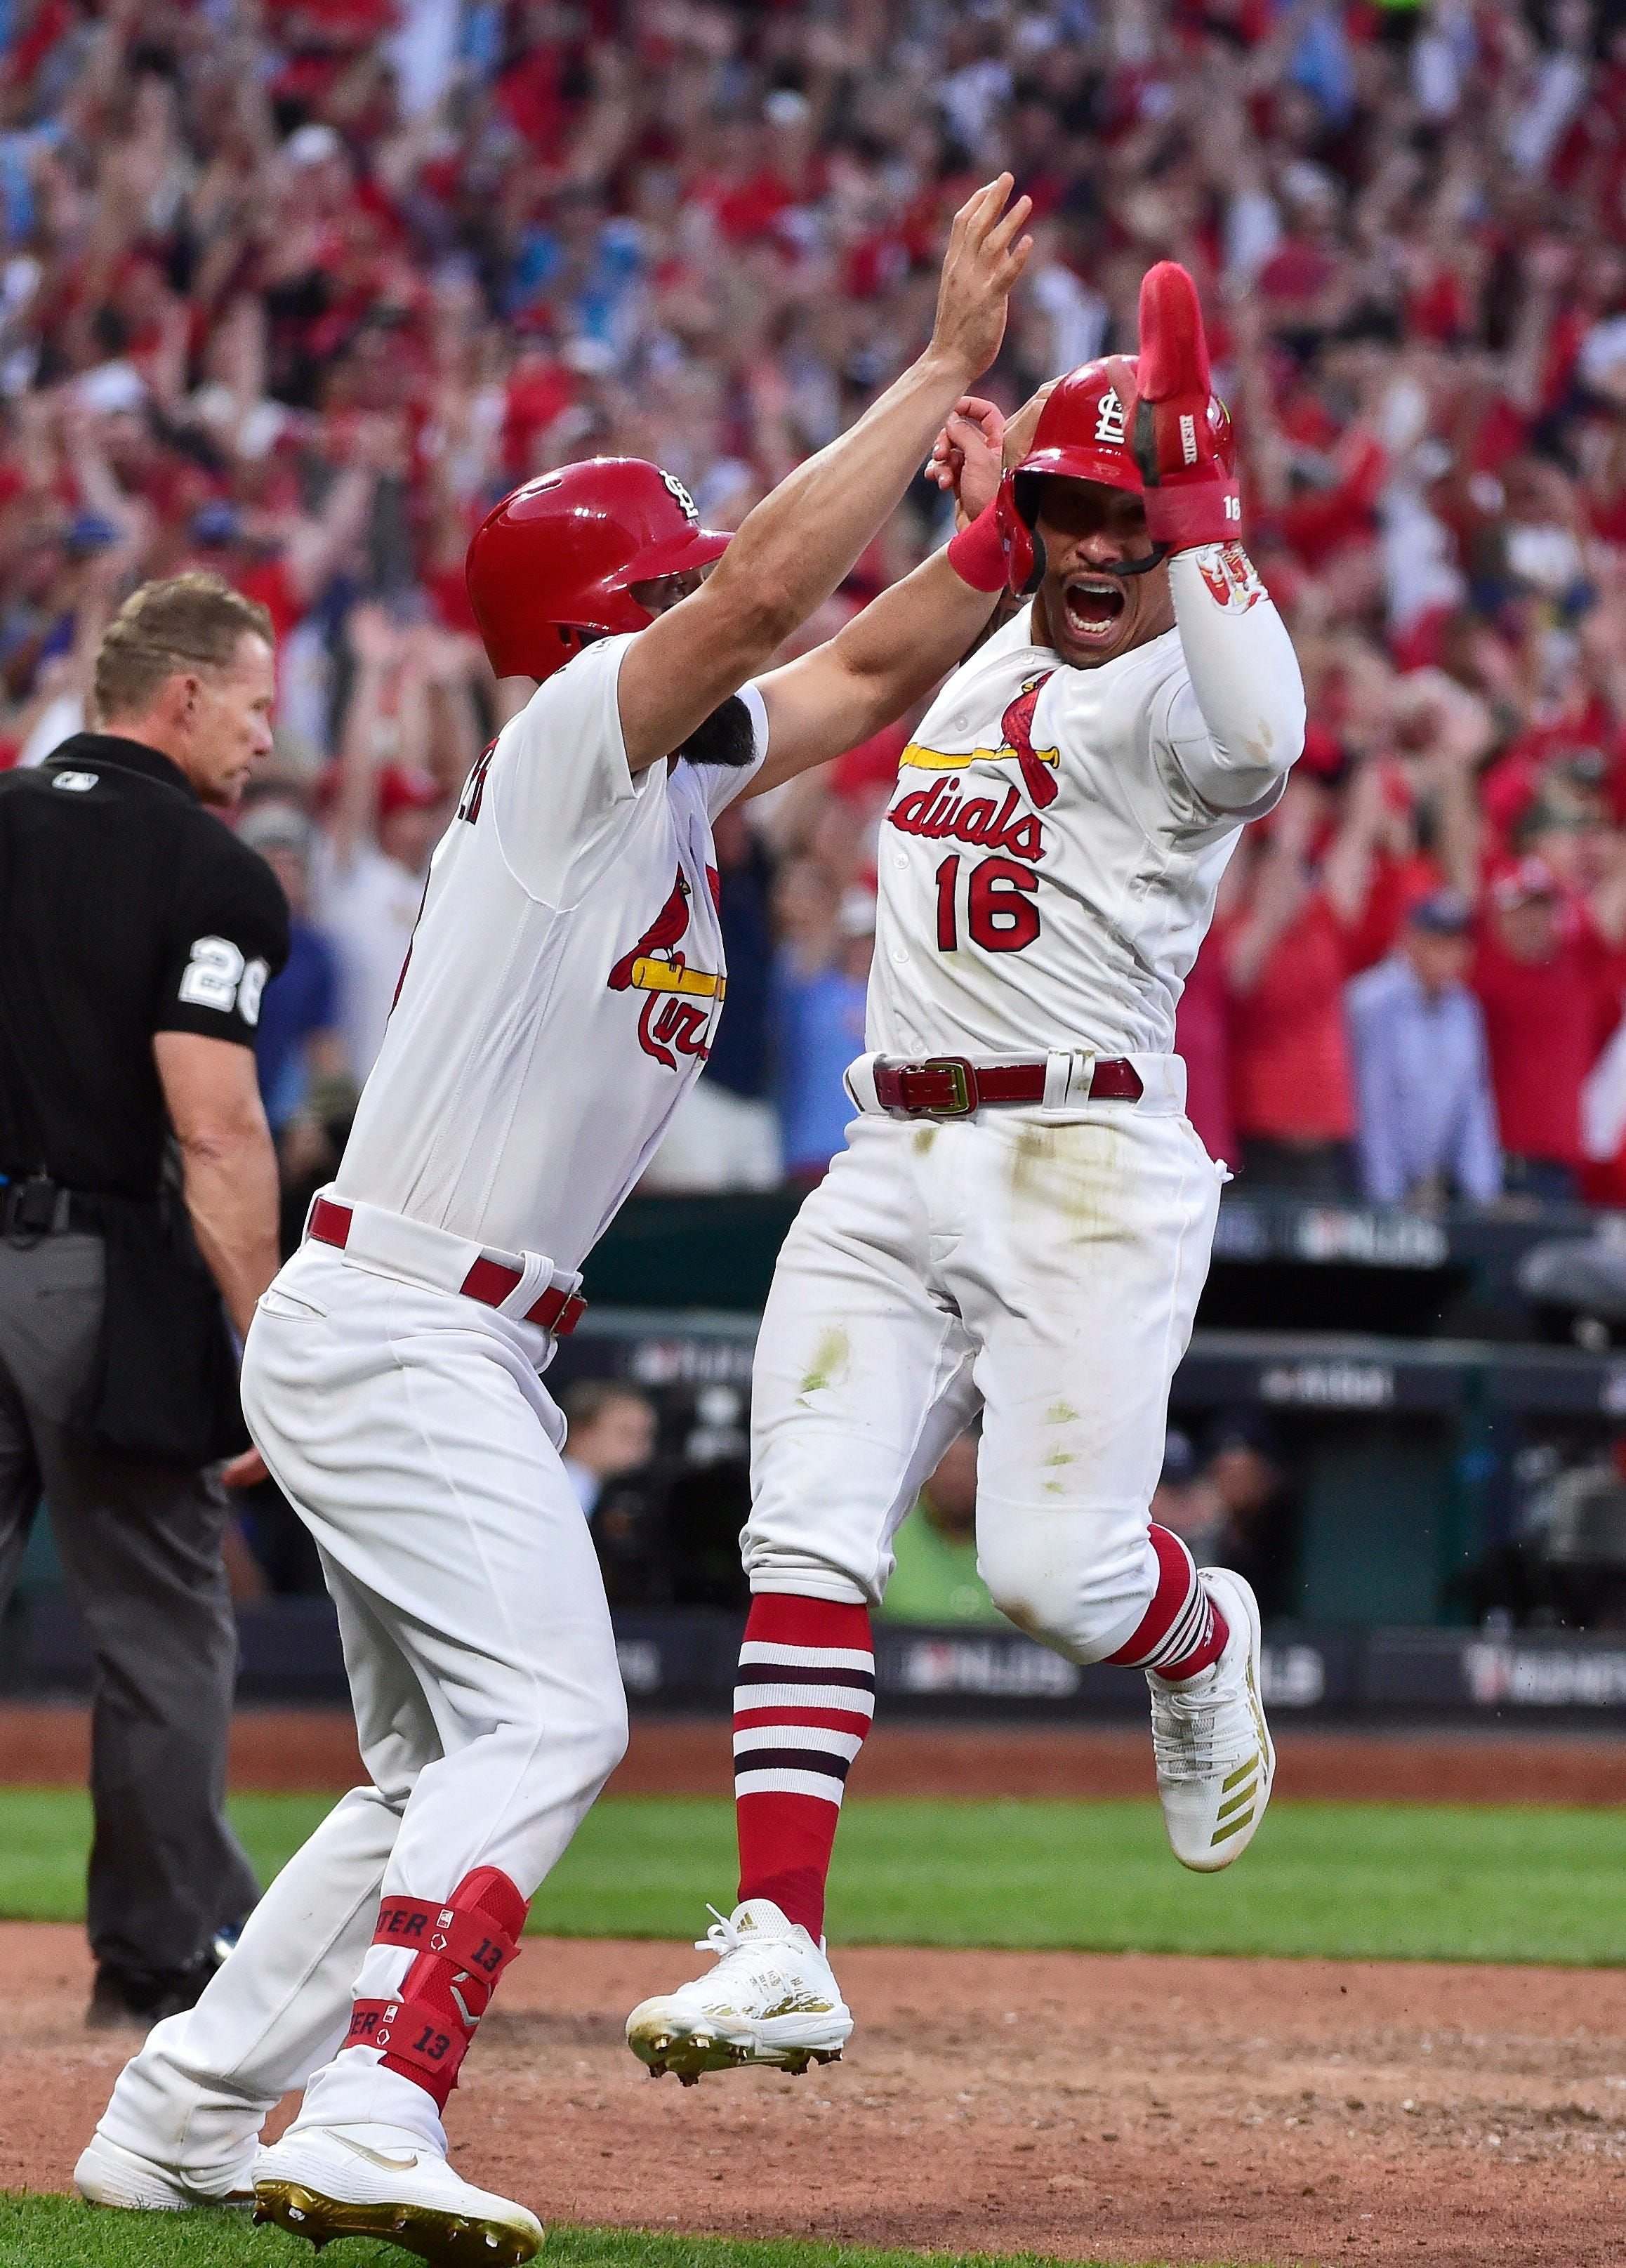 Cardinals Walk It Off Against Braves To Force Winner Take All Game 5 Braves Top News Stories Recent News